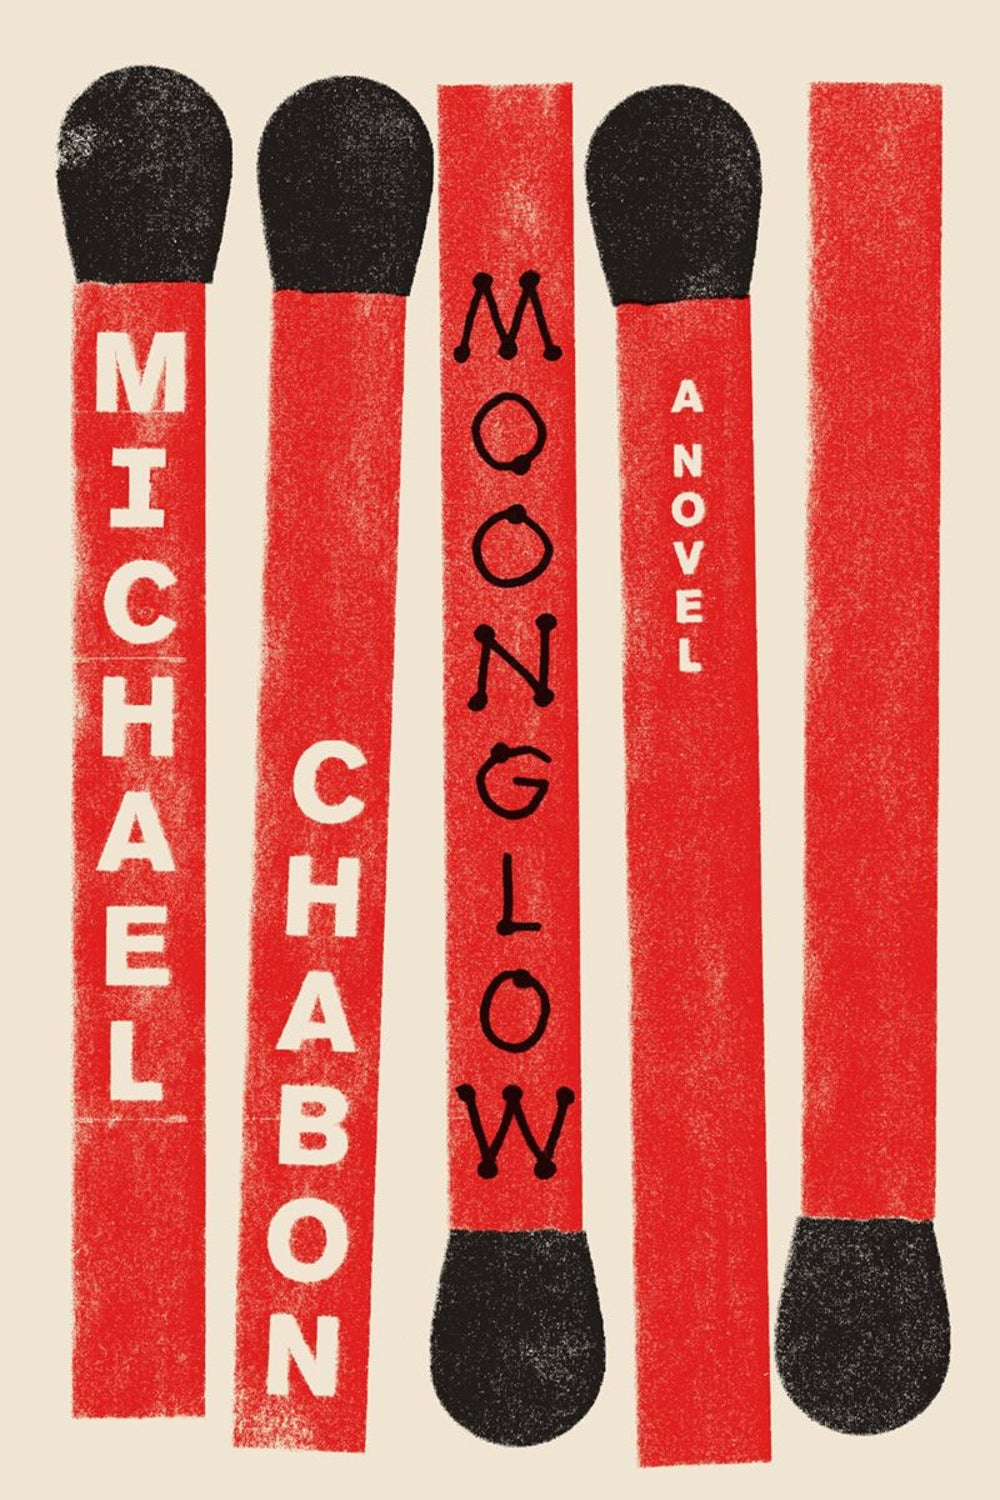 Director, Partner Management Stephanie Belsky -- 'Moonglow' by Michael Chabon